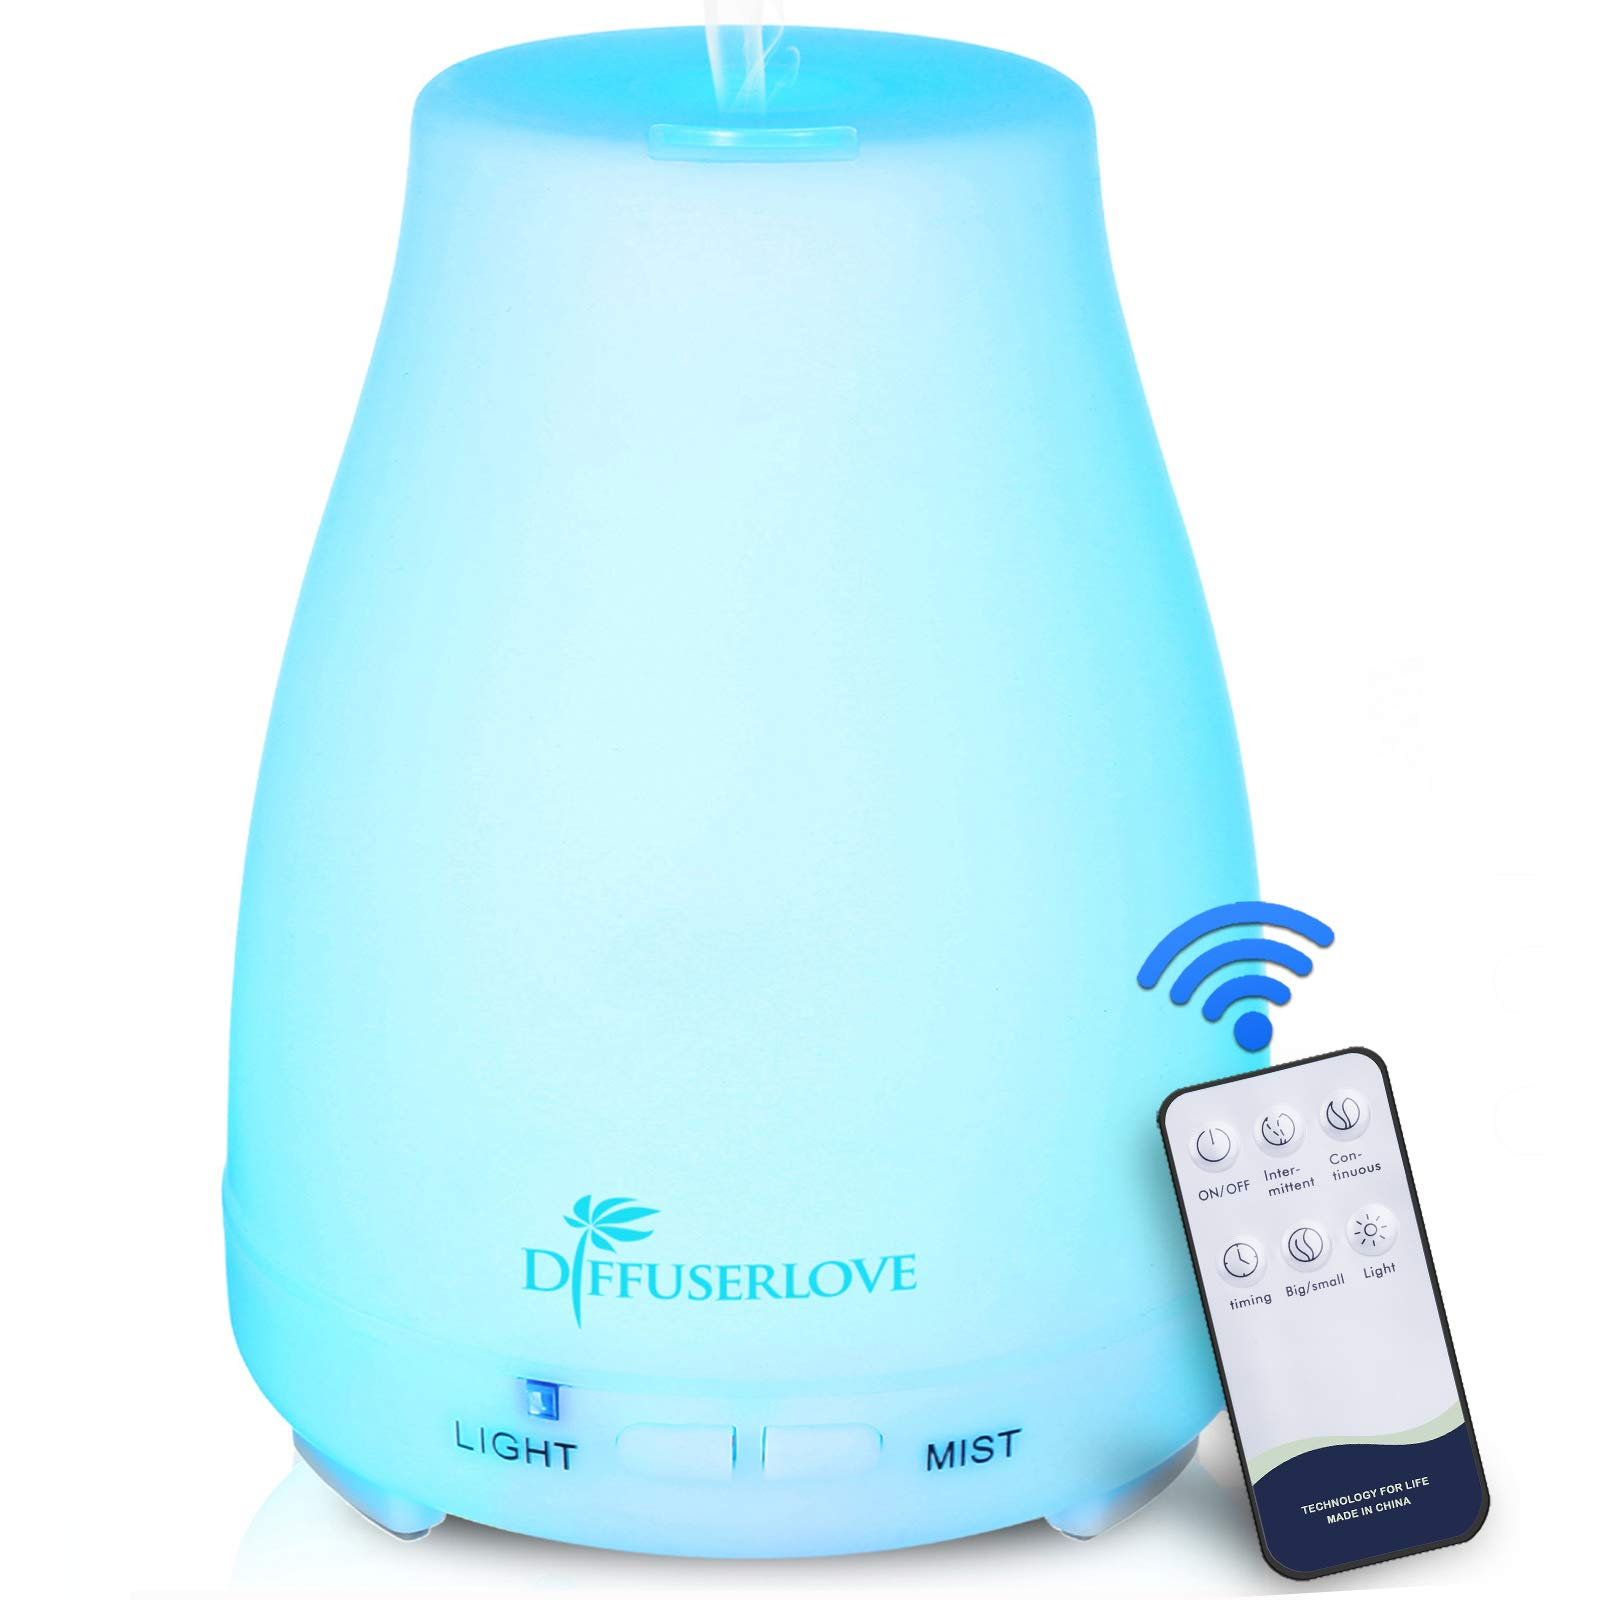 Diffuserlove Essential Oil Diffusers 200ML Remote Control Ultrasonic Mist Humidifiers BPA-Free Aromatherapy Diffuser with 7 Color Lights and Waterless Auto Shut-Off for Bedroom Office Kitchen